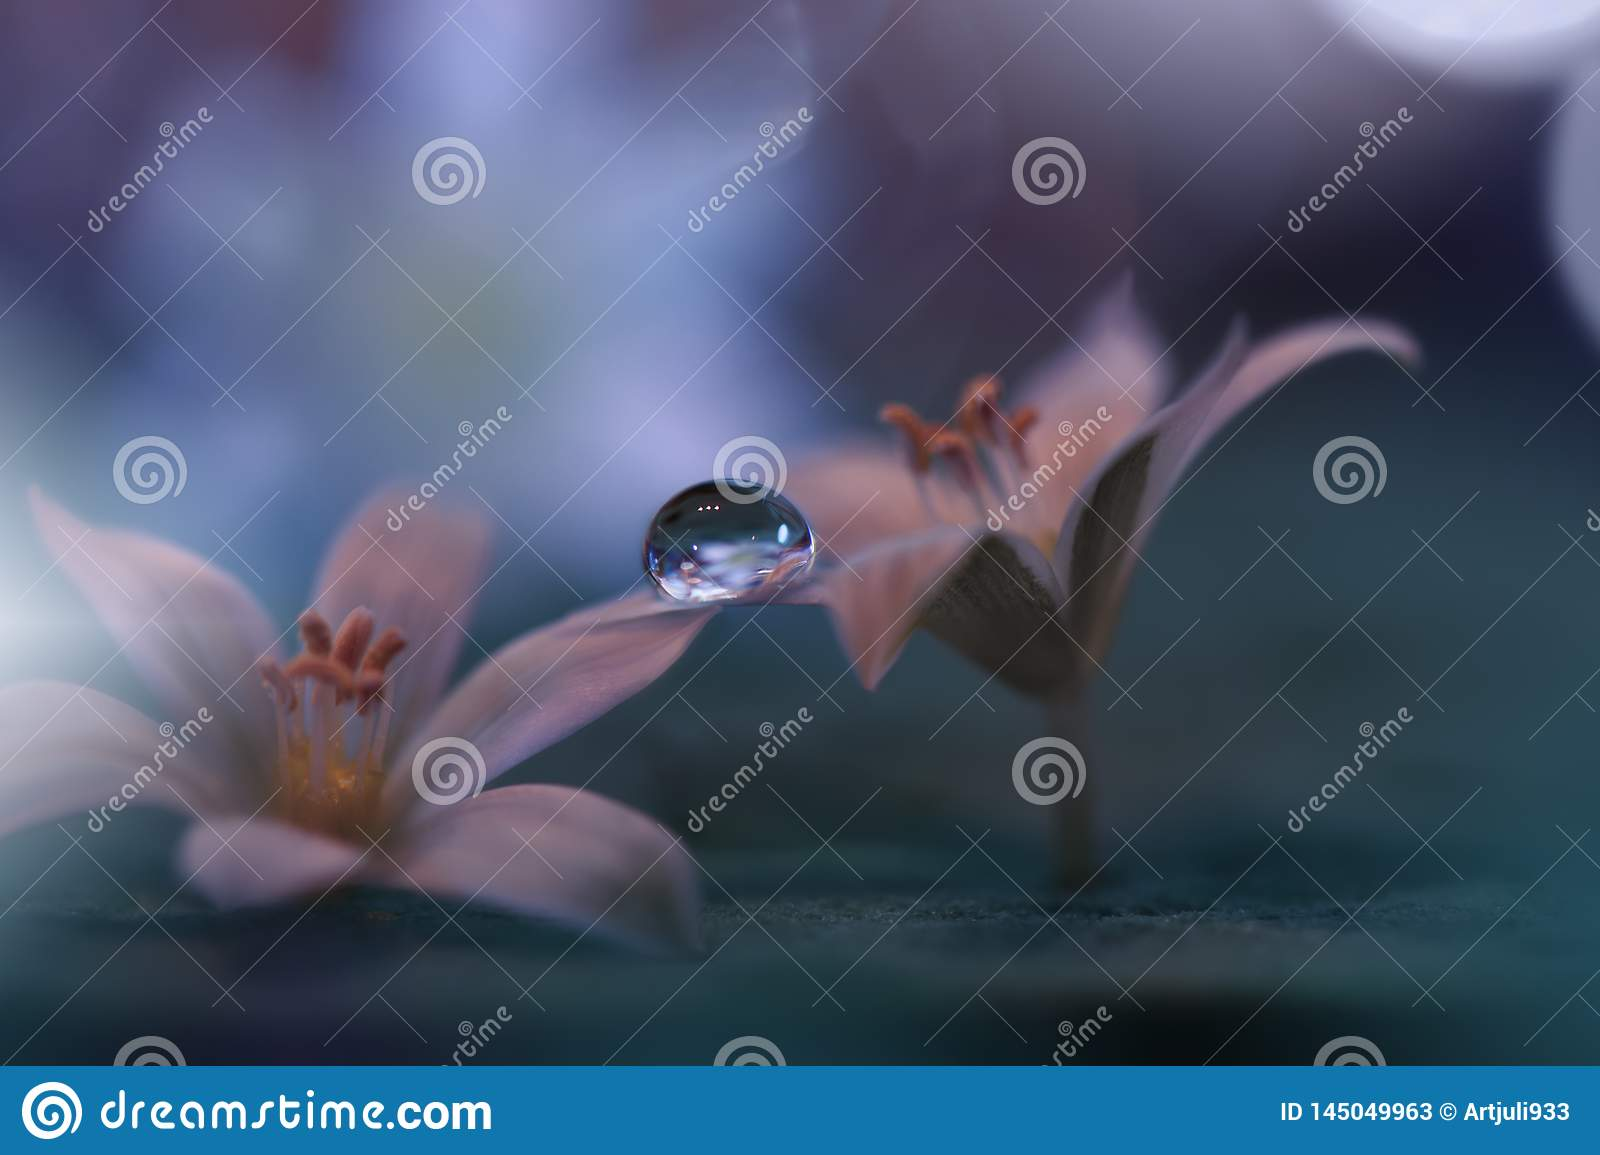 Beautiful Nature Background Abstract Artistic Wallpaper Art Macro Photography Spring Flowers Water Drop Amazing Floral Photo Love Stock Image Image Of Brochure Colors 145049963